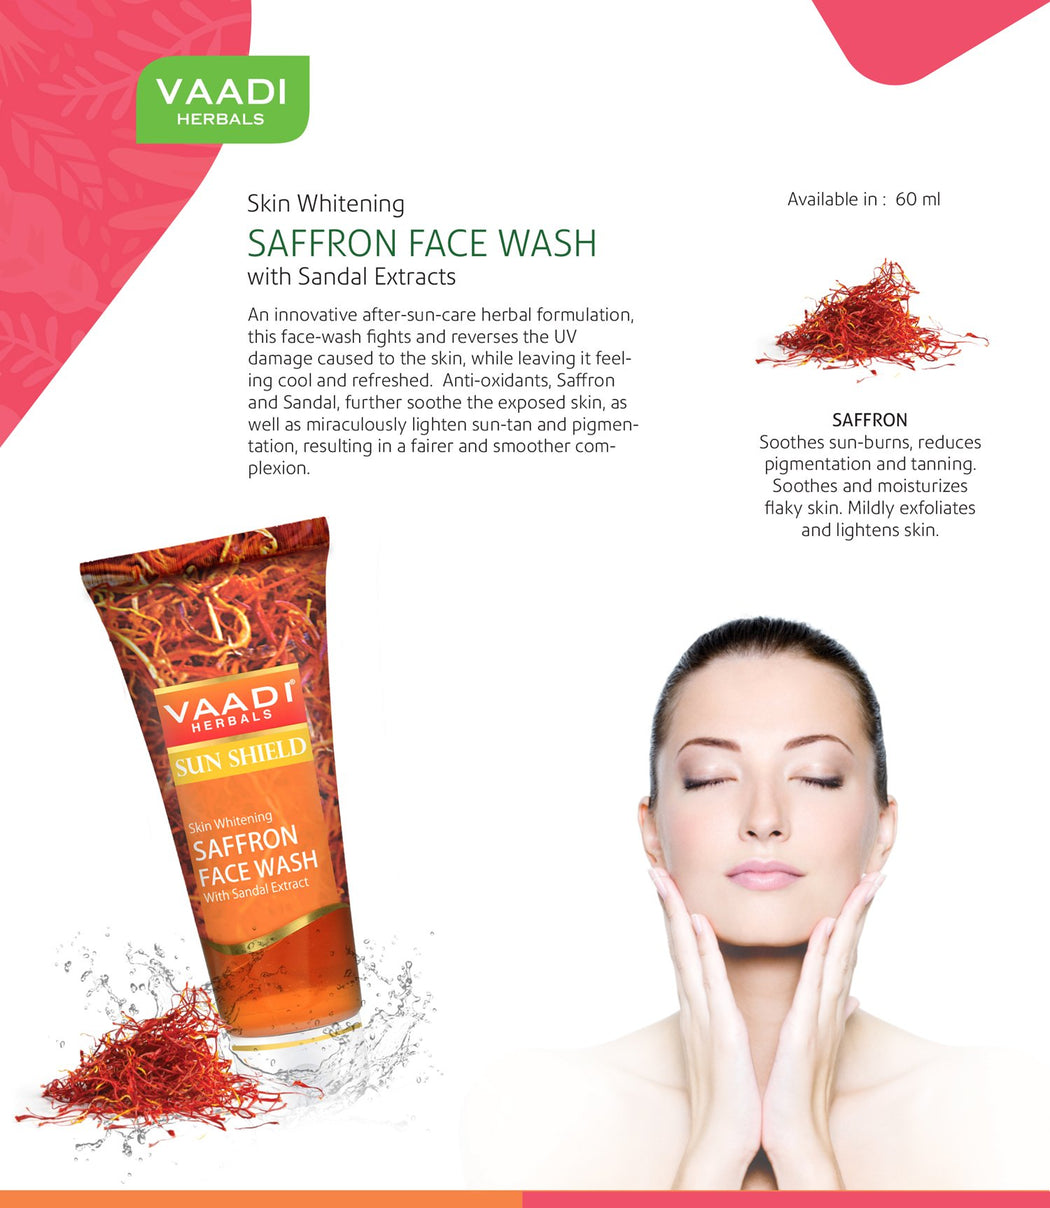 Skin Brightening Organic Saffron Face Wash with Sandalwood (4 x 60 ml/2.1 fl oz)